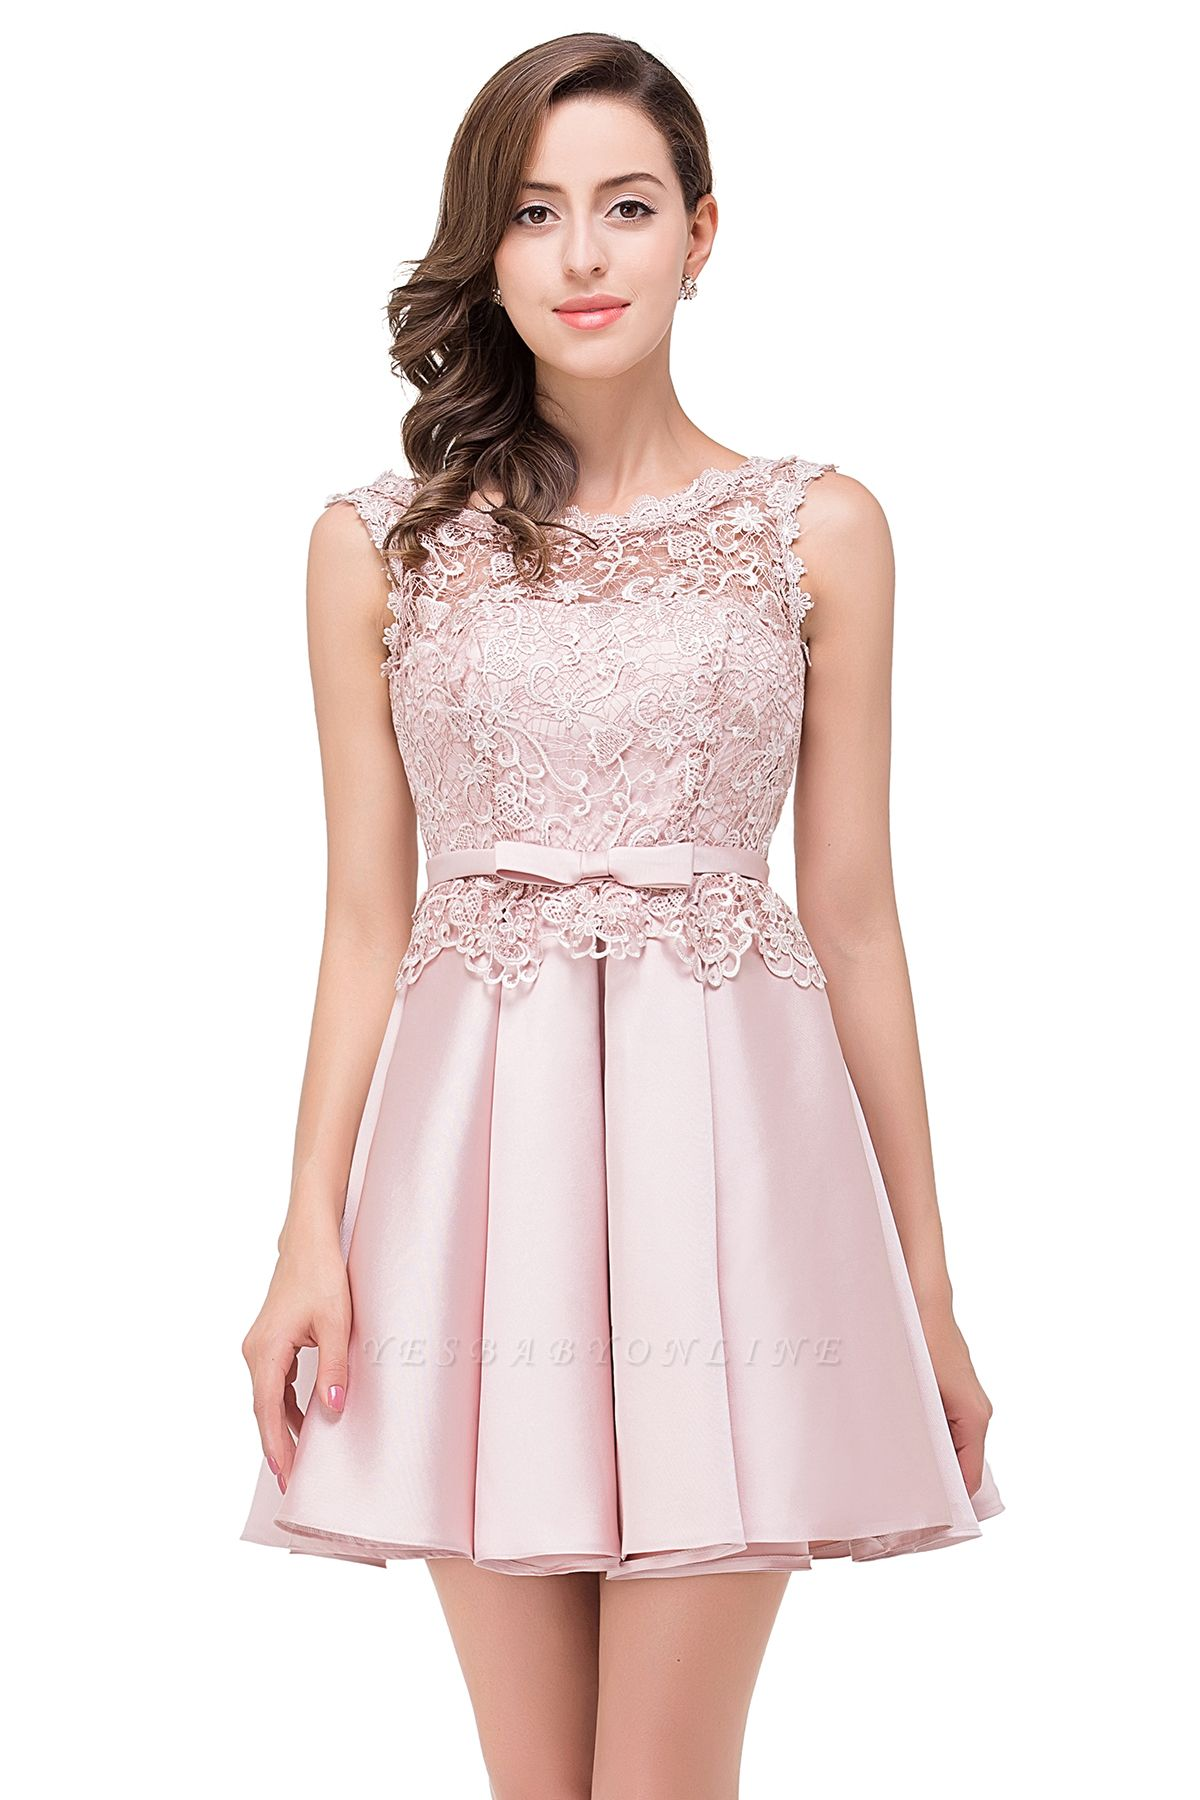 Cheap A-line Knee-length Satin Homecoming Dress with Lace in Stock